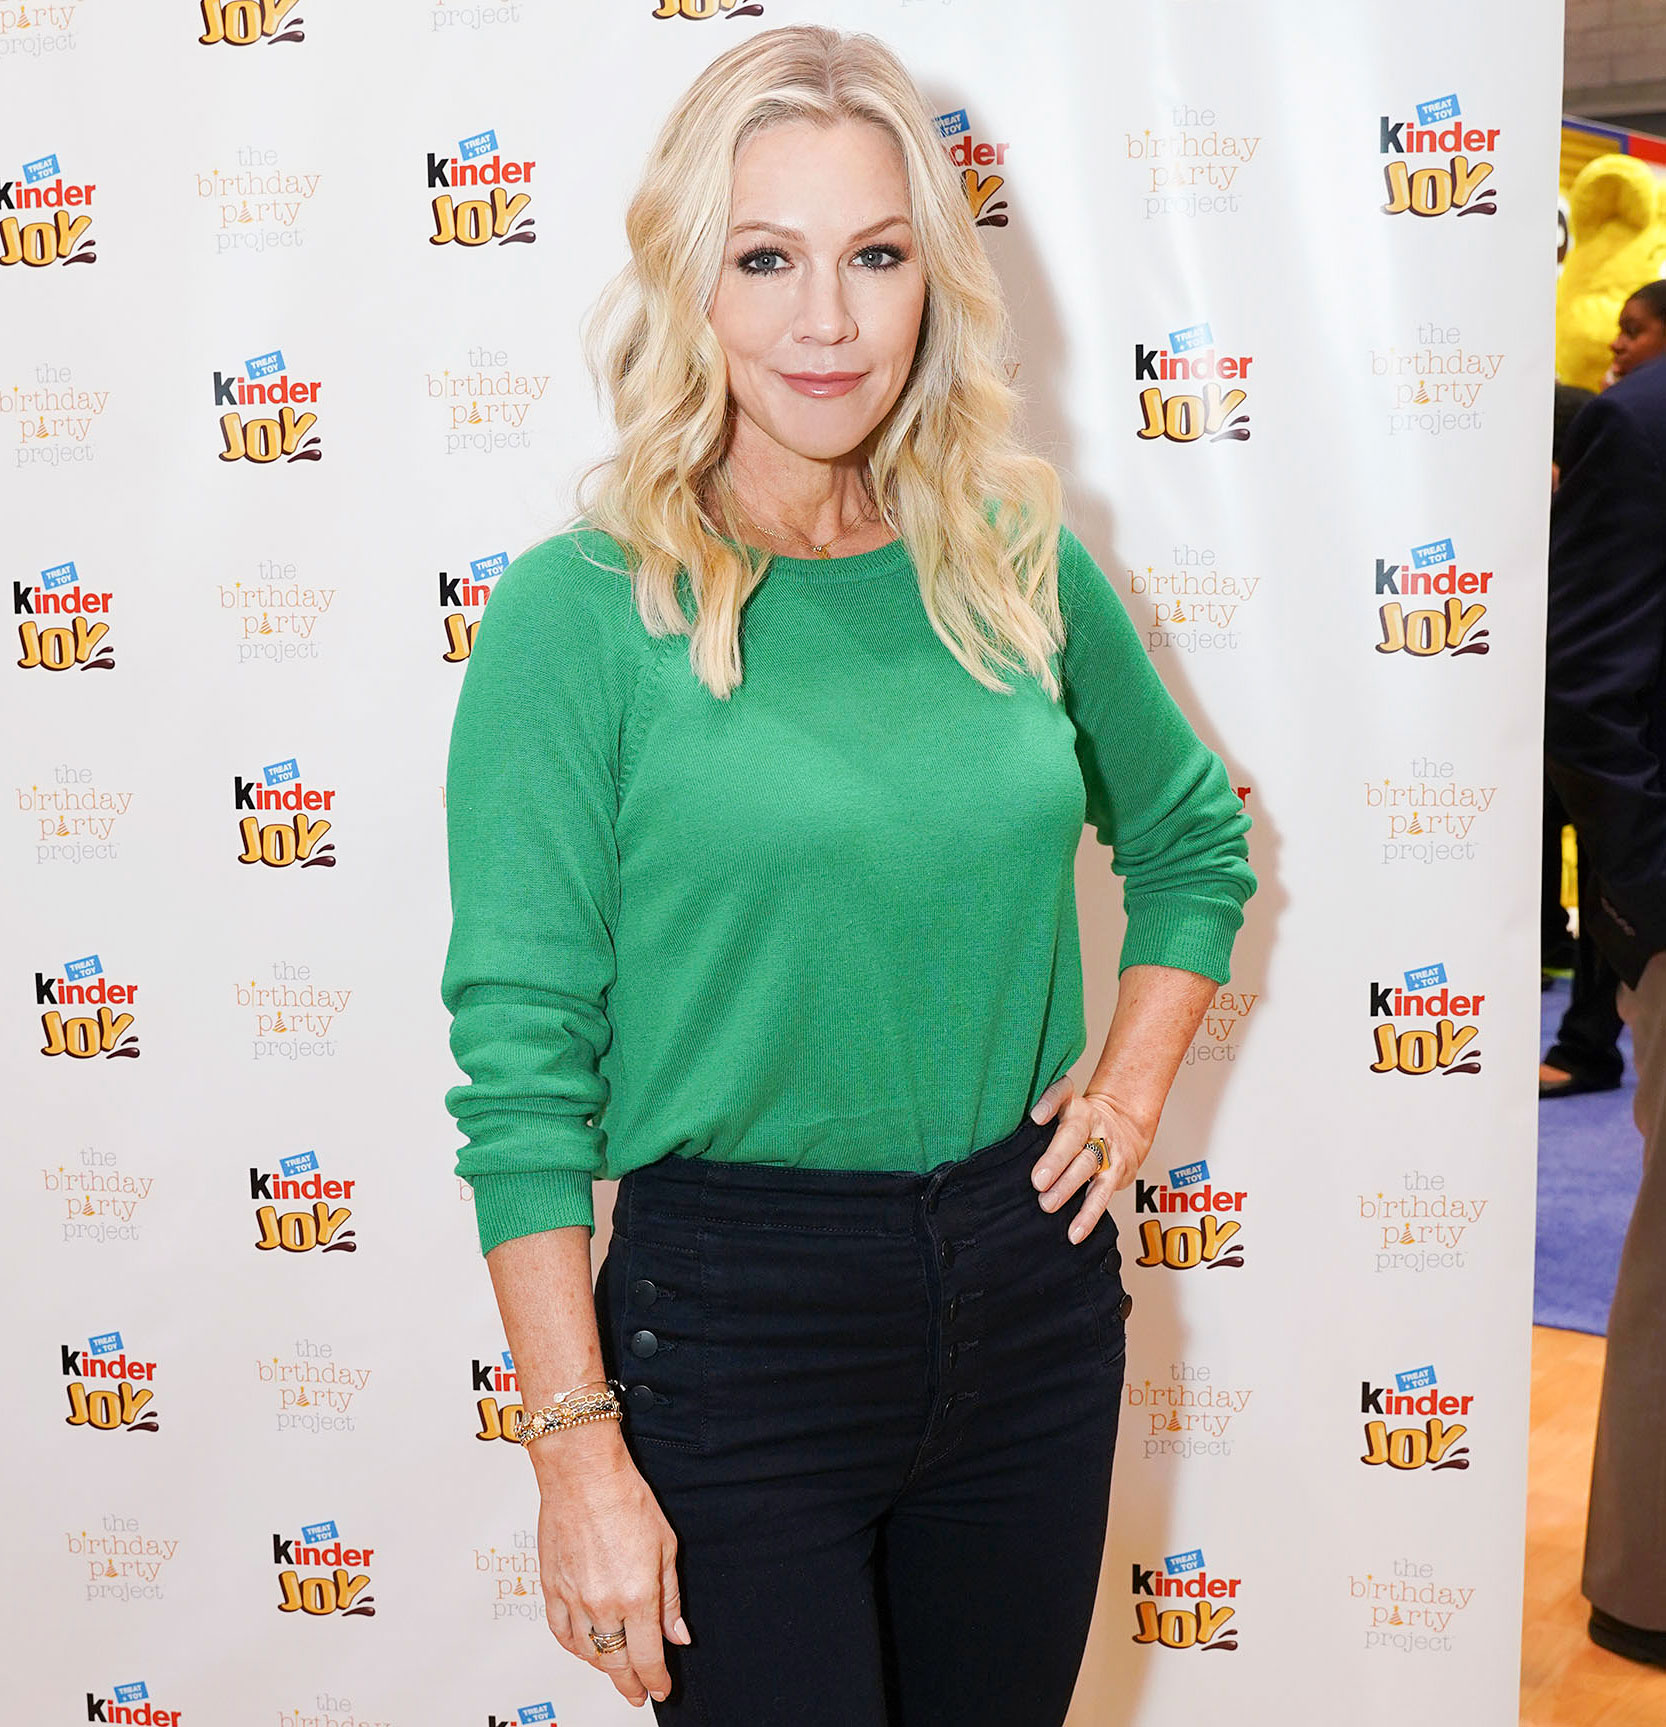 Jennie Garth Beverly Hills 90210 Guest Appearances